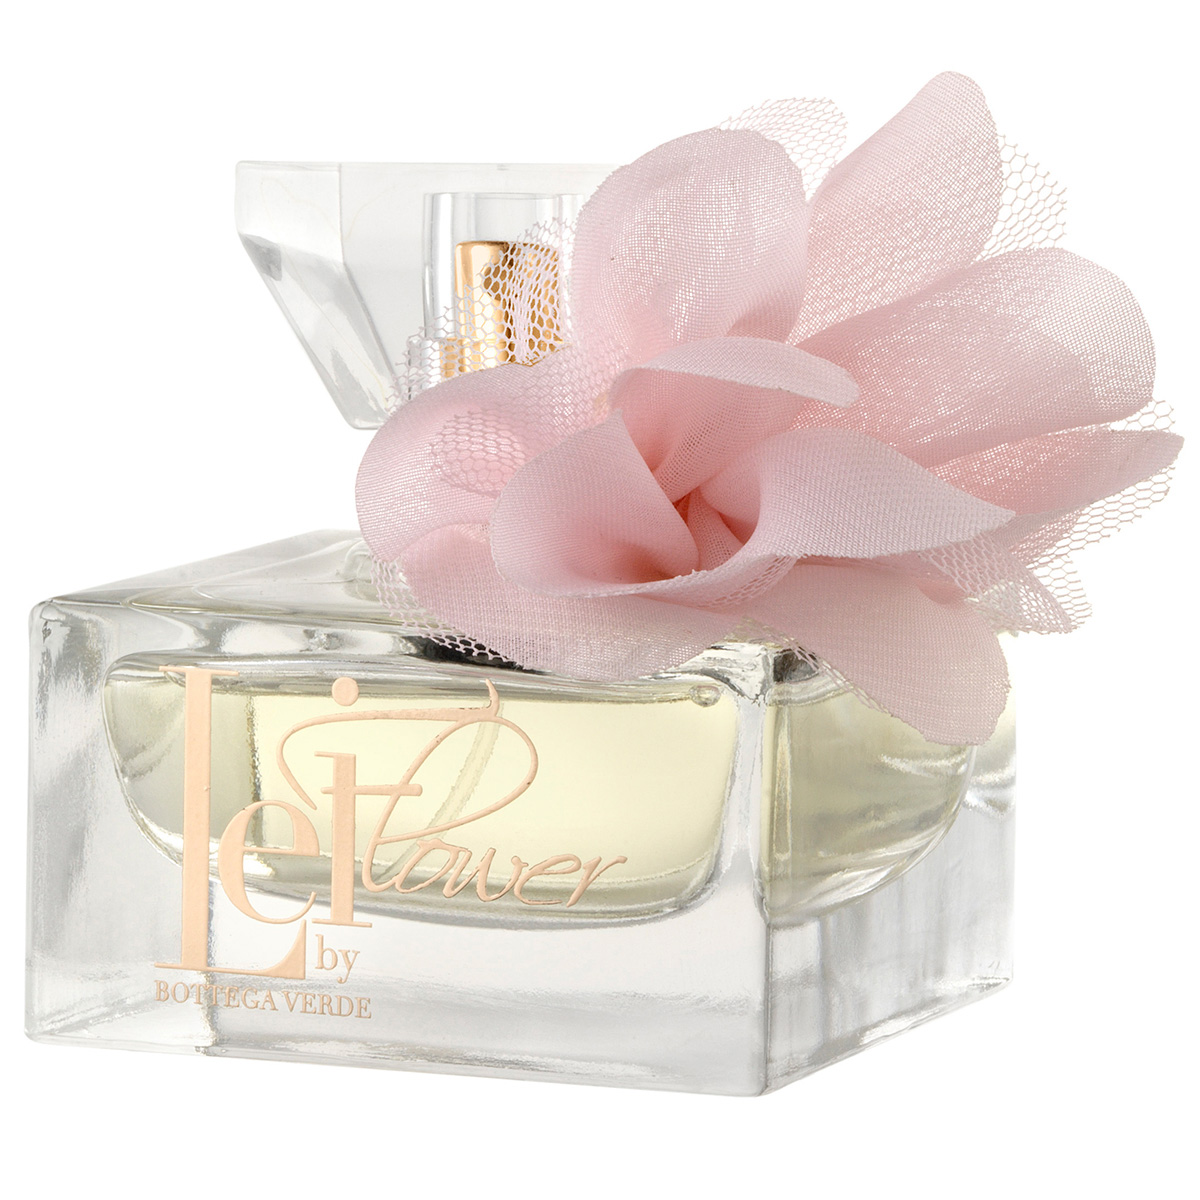 Apa de parfum Flower imagine